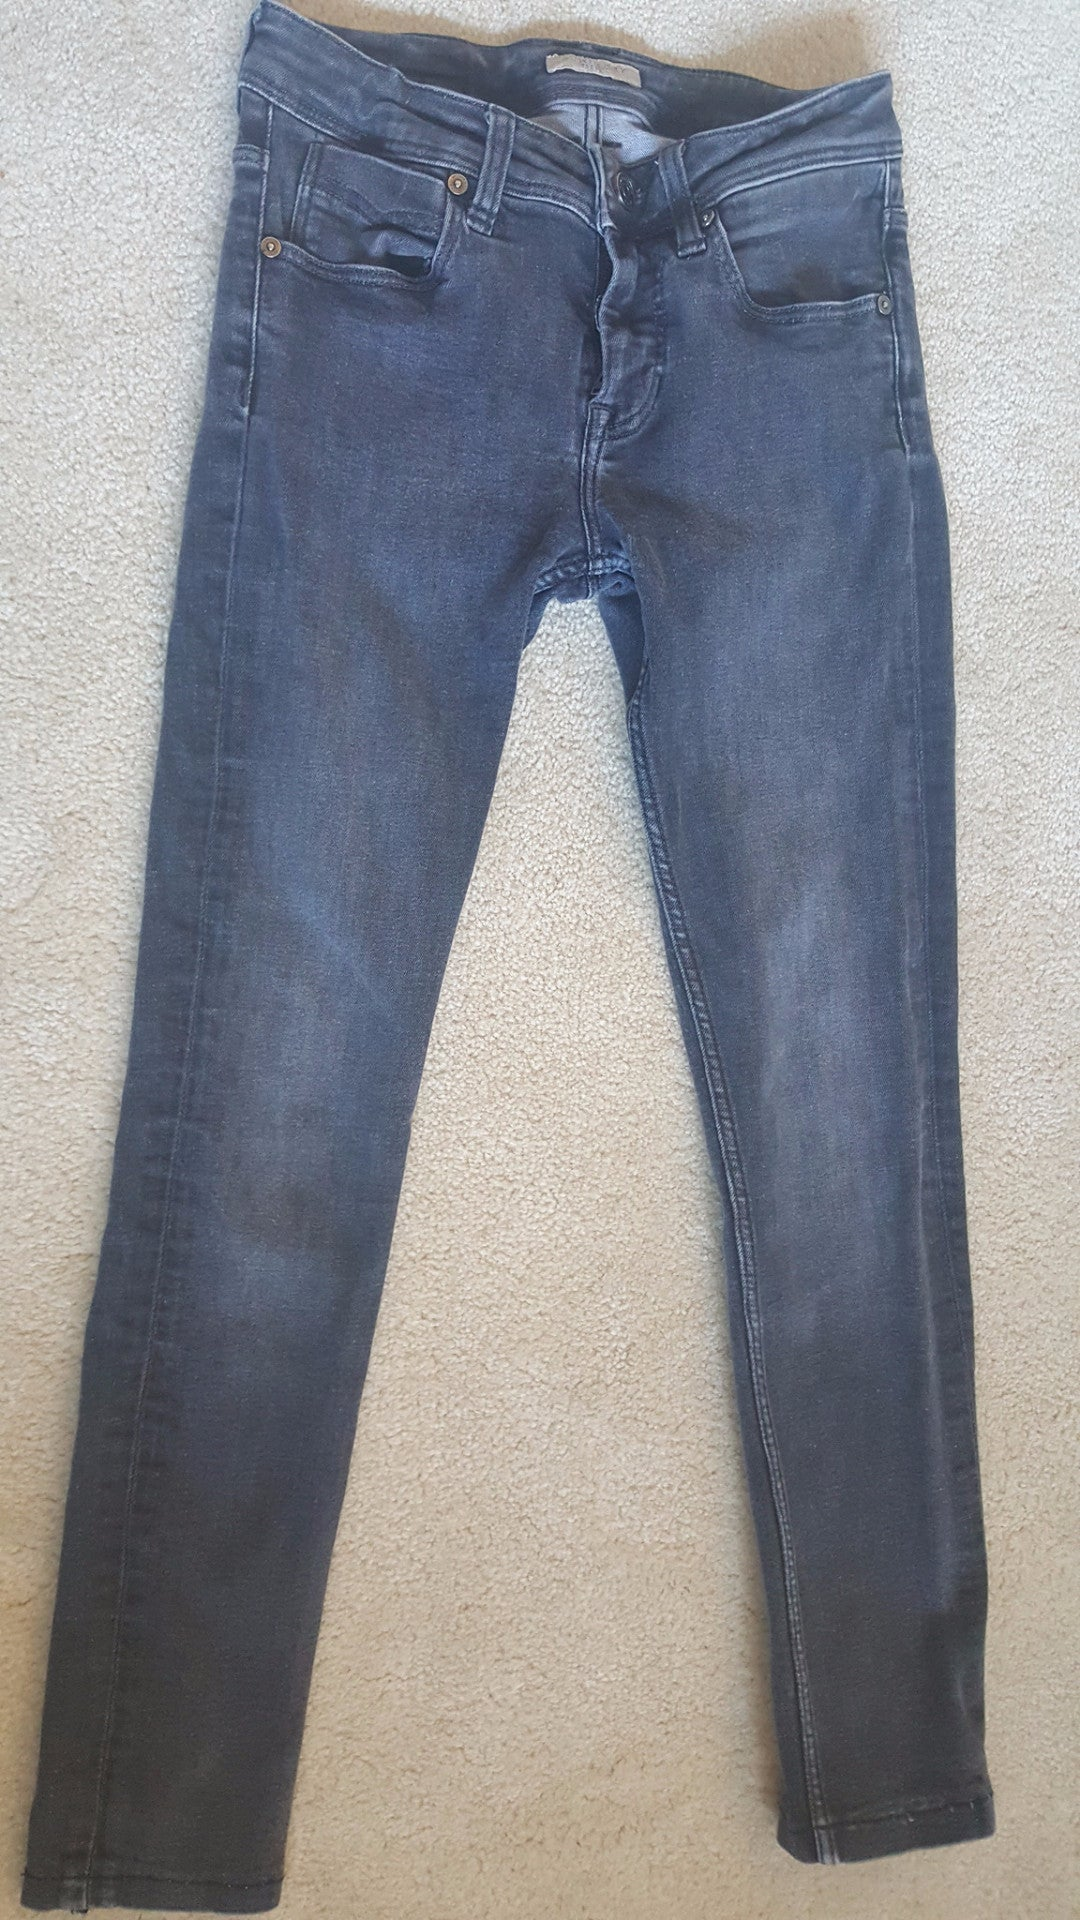 BURBERRY BRIT SKINNY CROPPED LEG JEANS, GRAY - SIZE 25